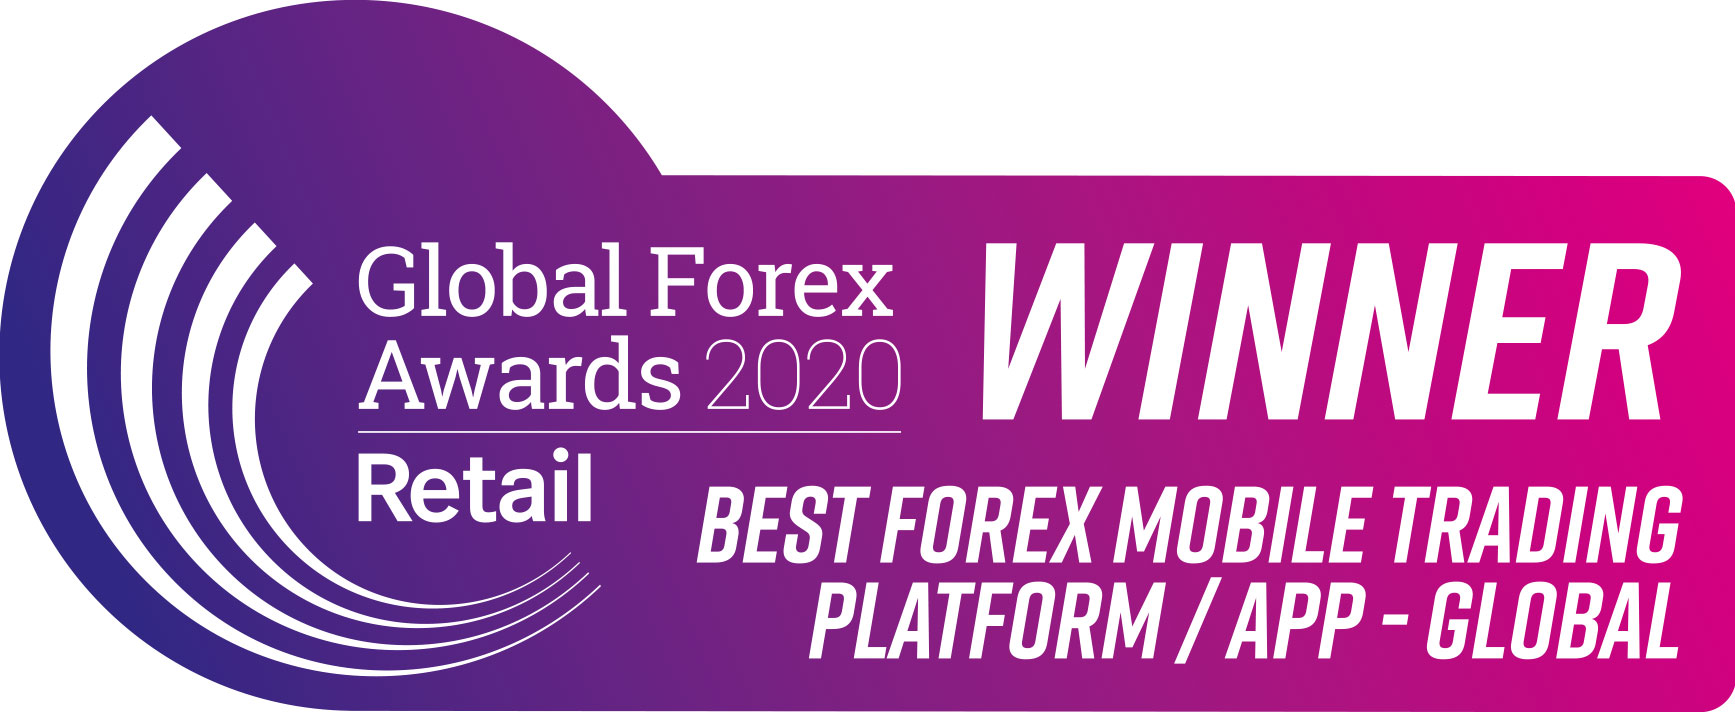 AvaTradeGo荣获2020 Global Forex Awards全球最佳外汇交易APP奖项